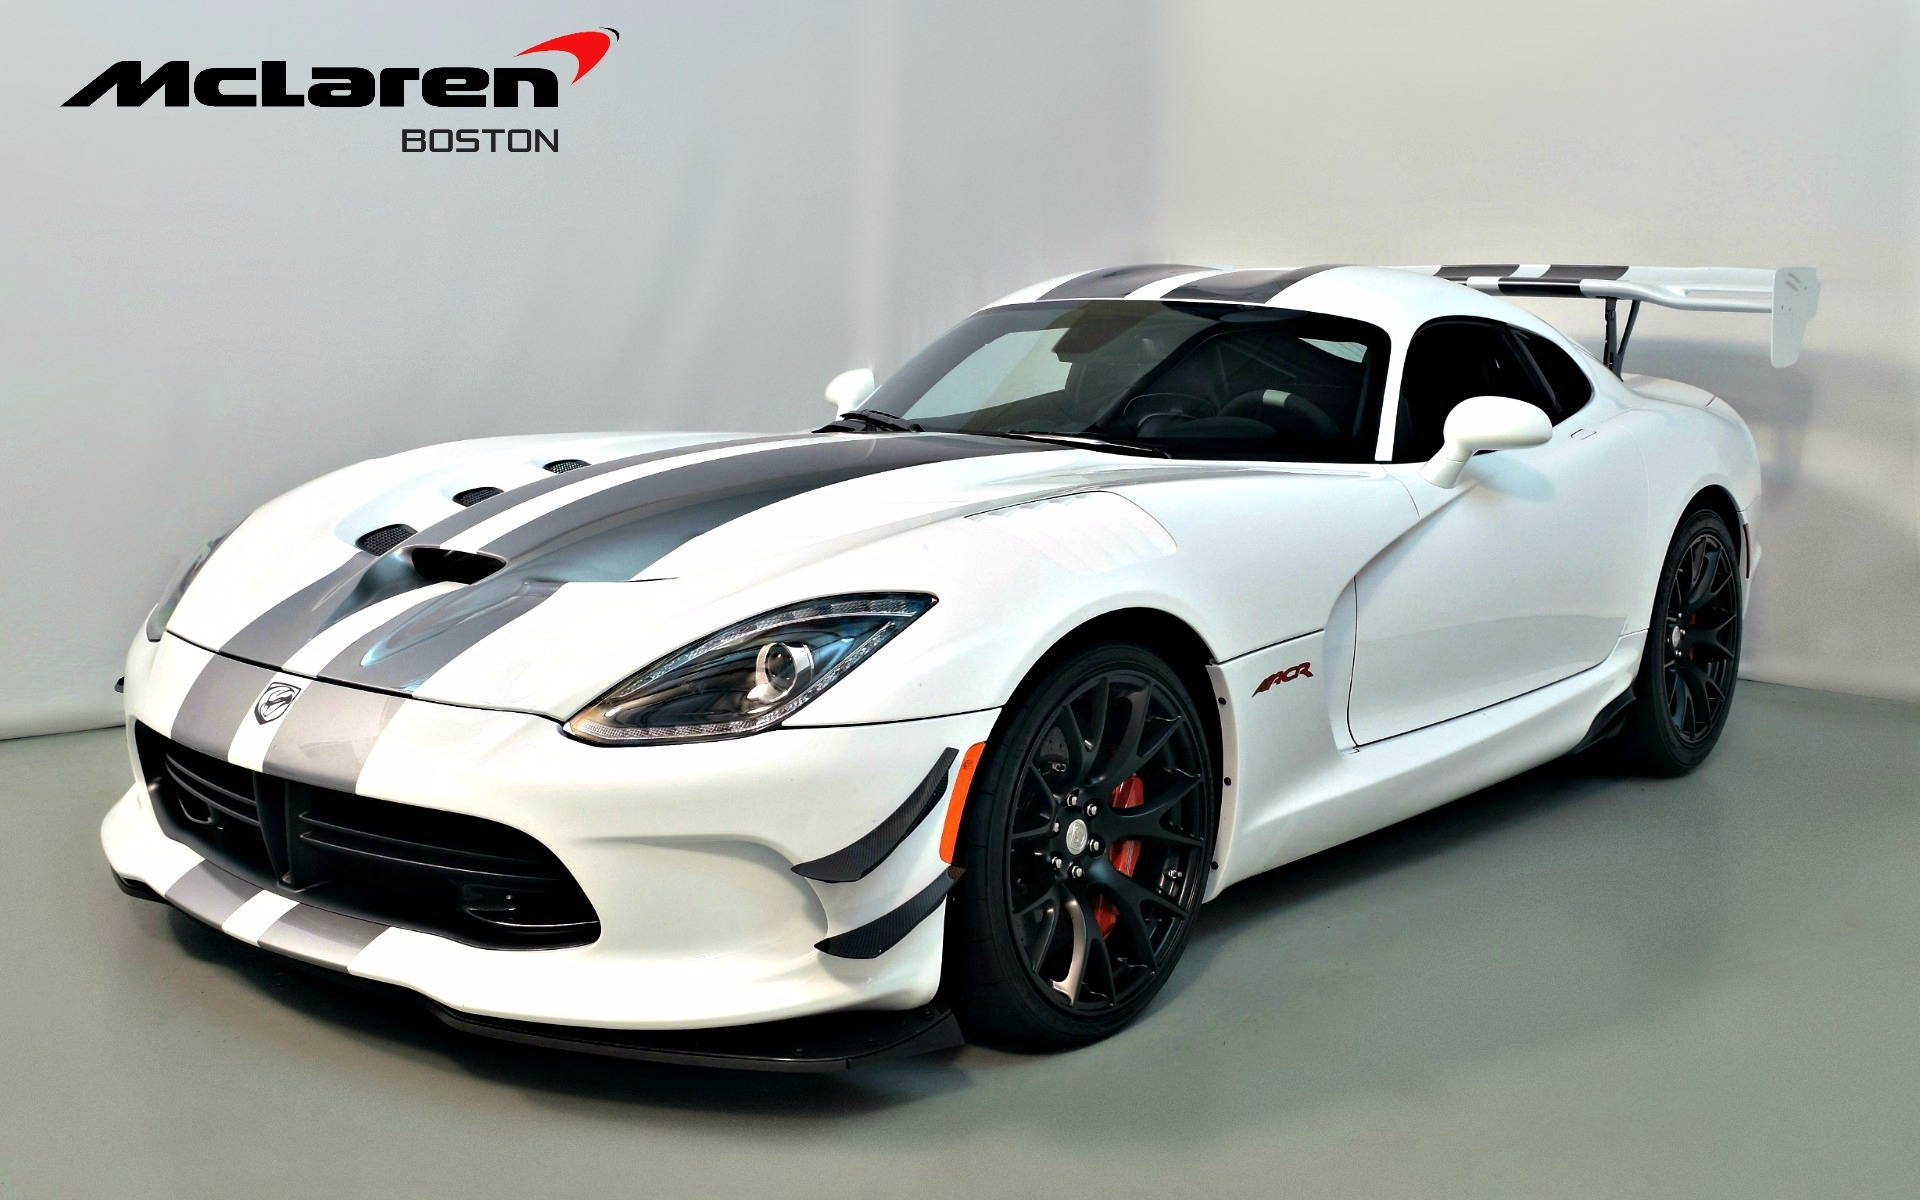 2016 dodge viper acr for sale in norwell ma 100487 mclaren boston. Black Bedroom Furniture Sets. Home Design Ideas